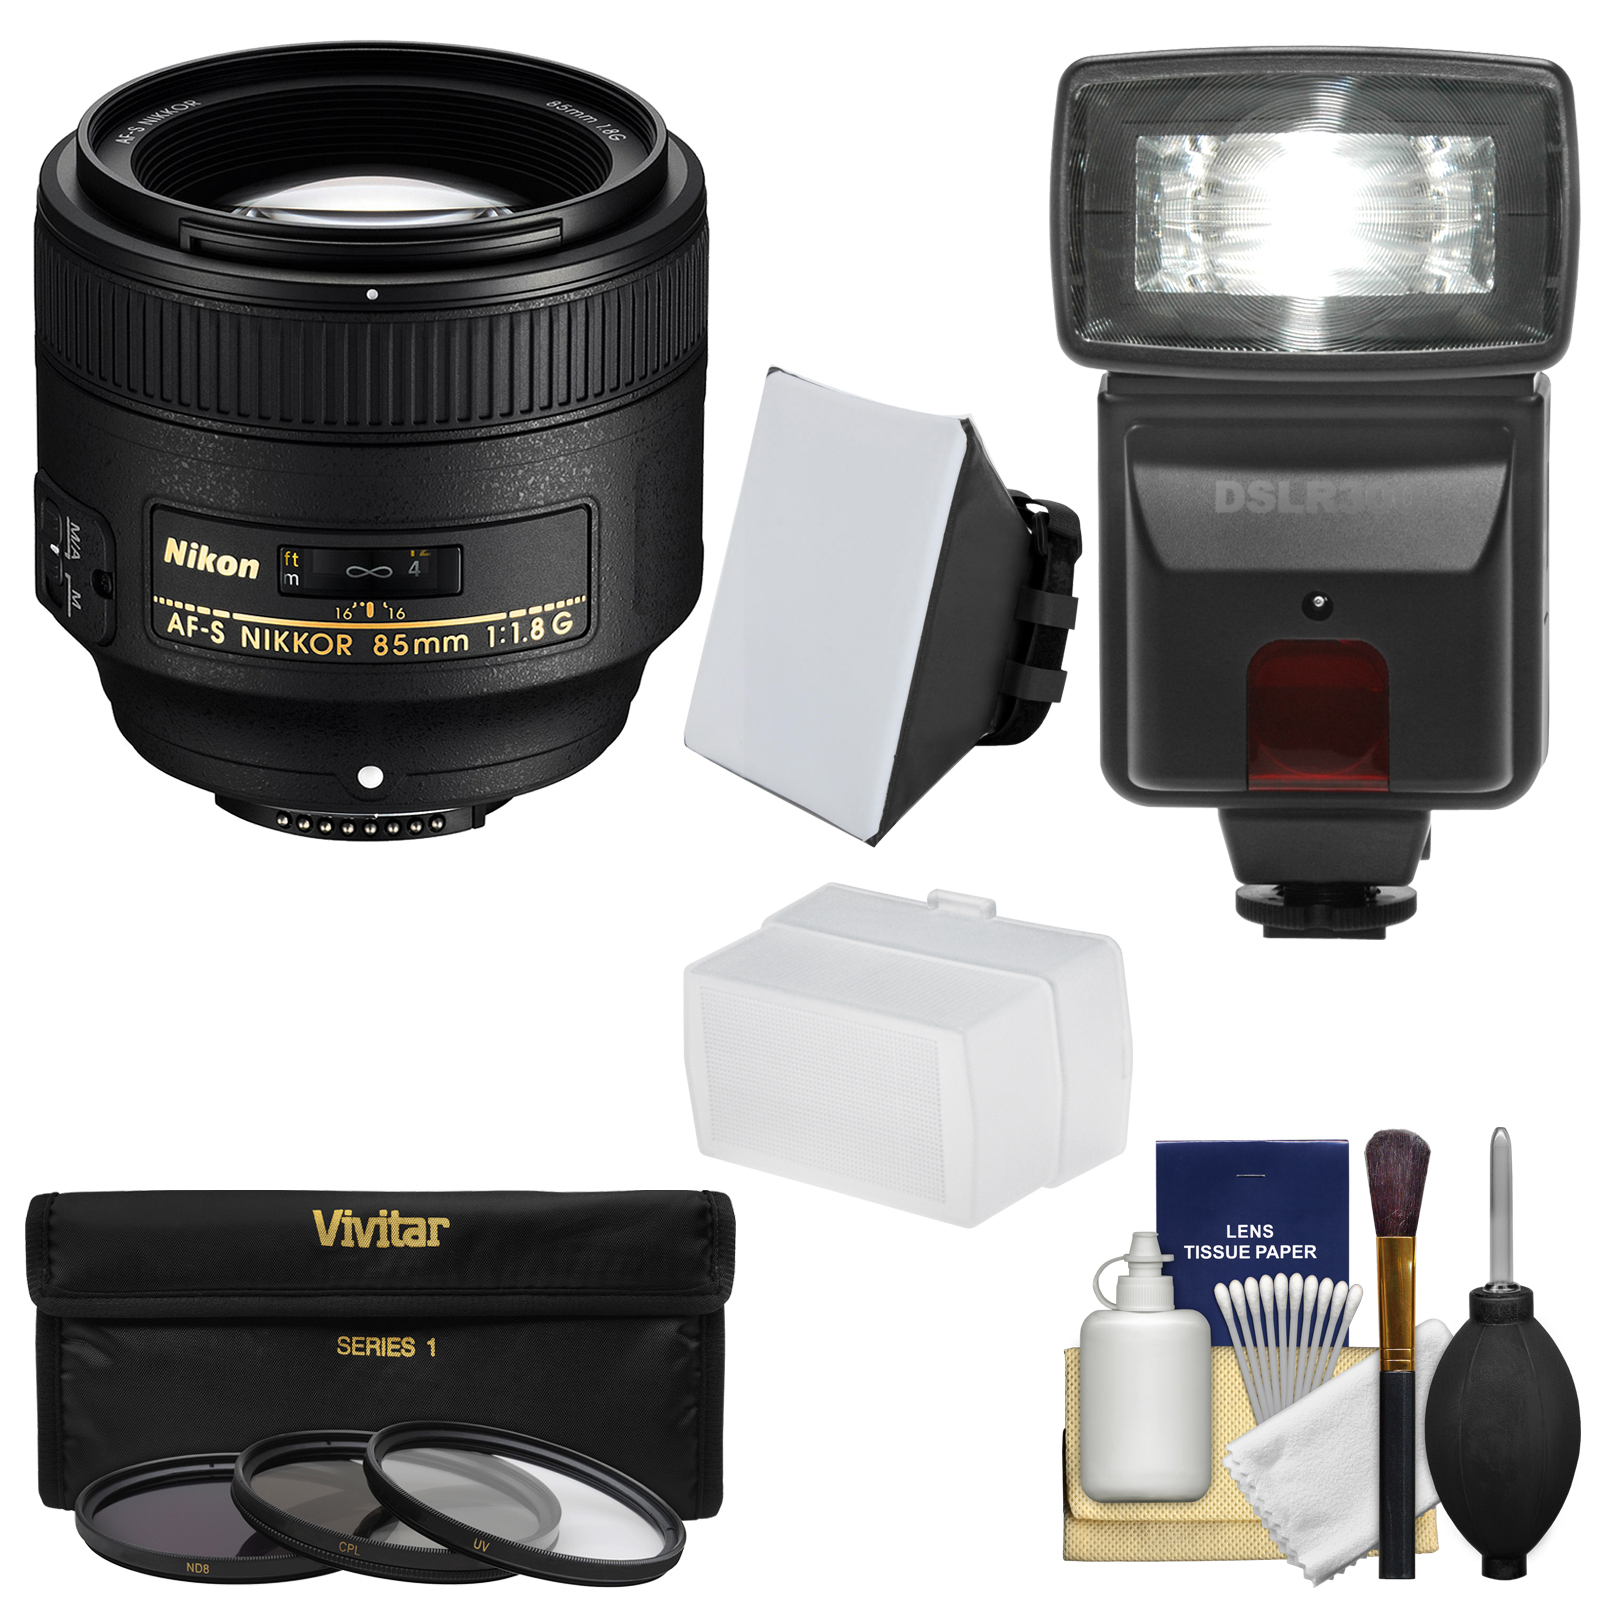 Nikon 85mm f/1.8G AF-S Nikkor Lens with 3 Filters + Flash & 2 Diffusers + Kit for D3200, D3300, D5200, D5300, D7000, D7100, D610, D800, D810, D4s DSLR Cameras